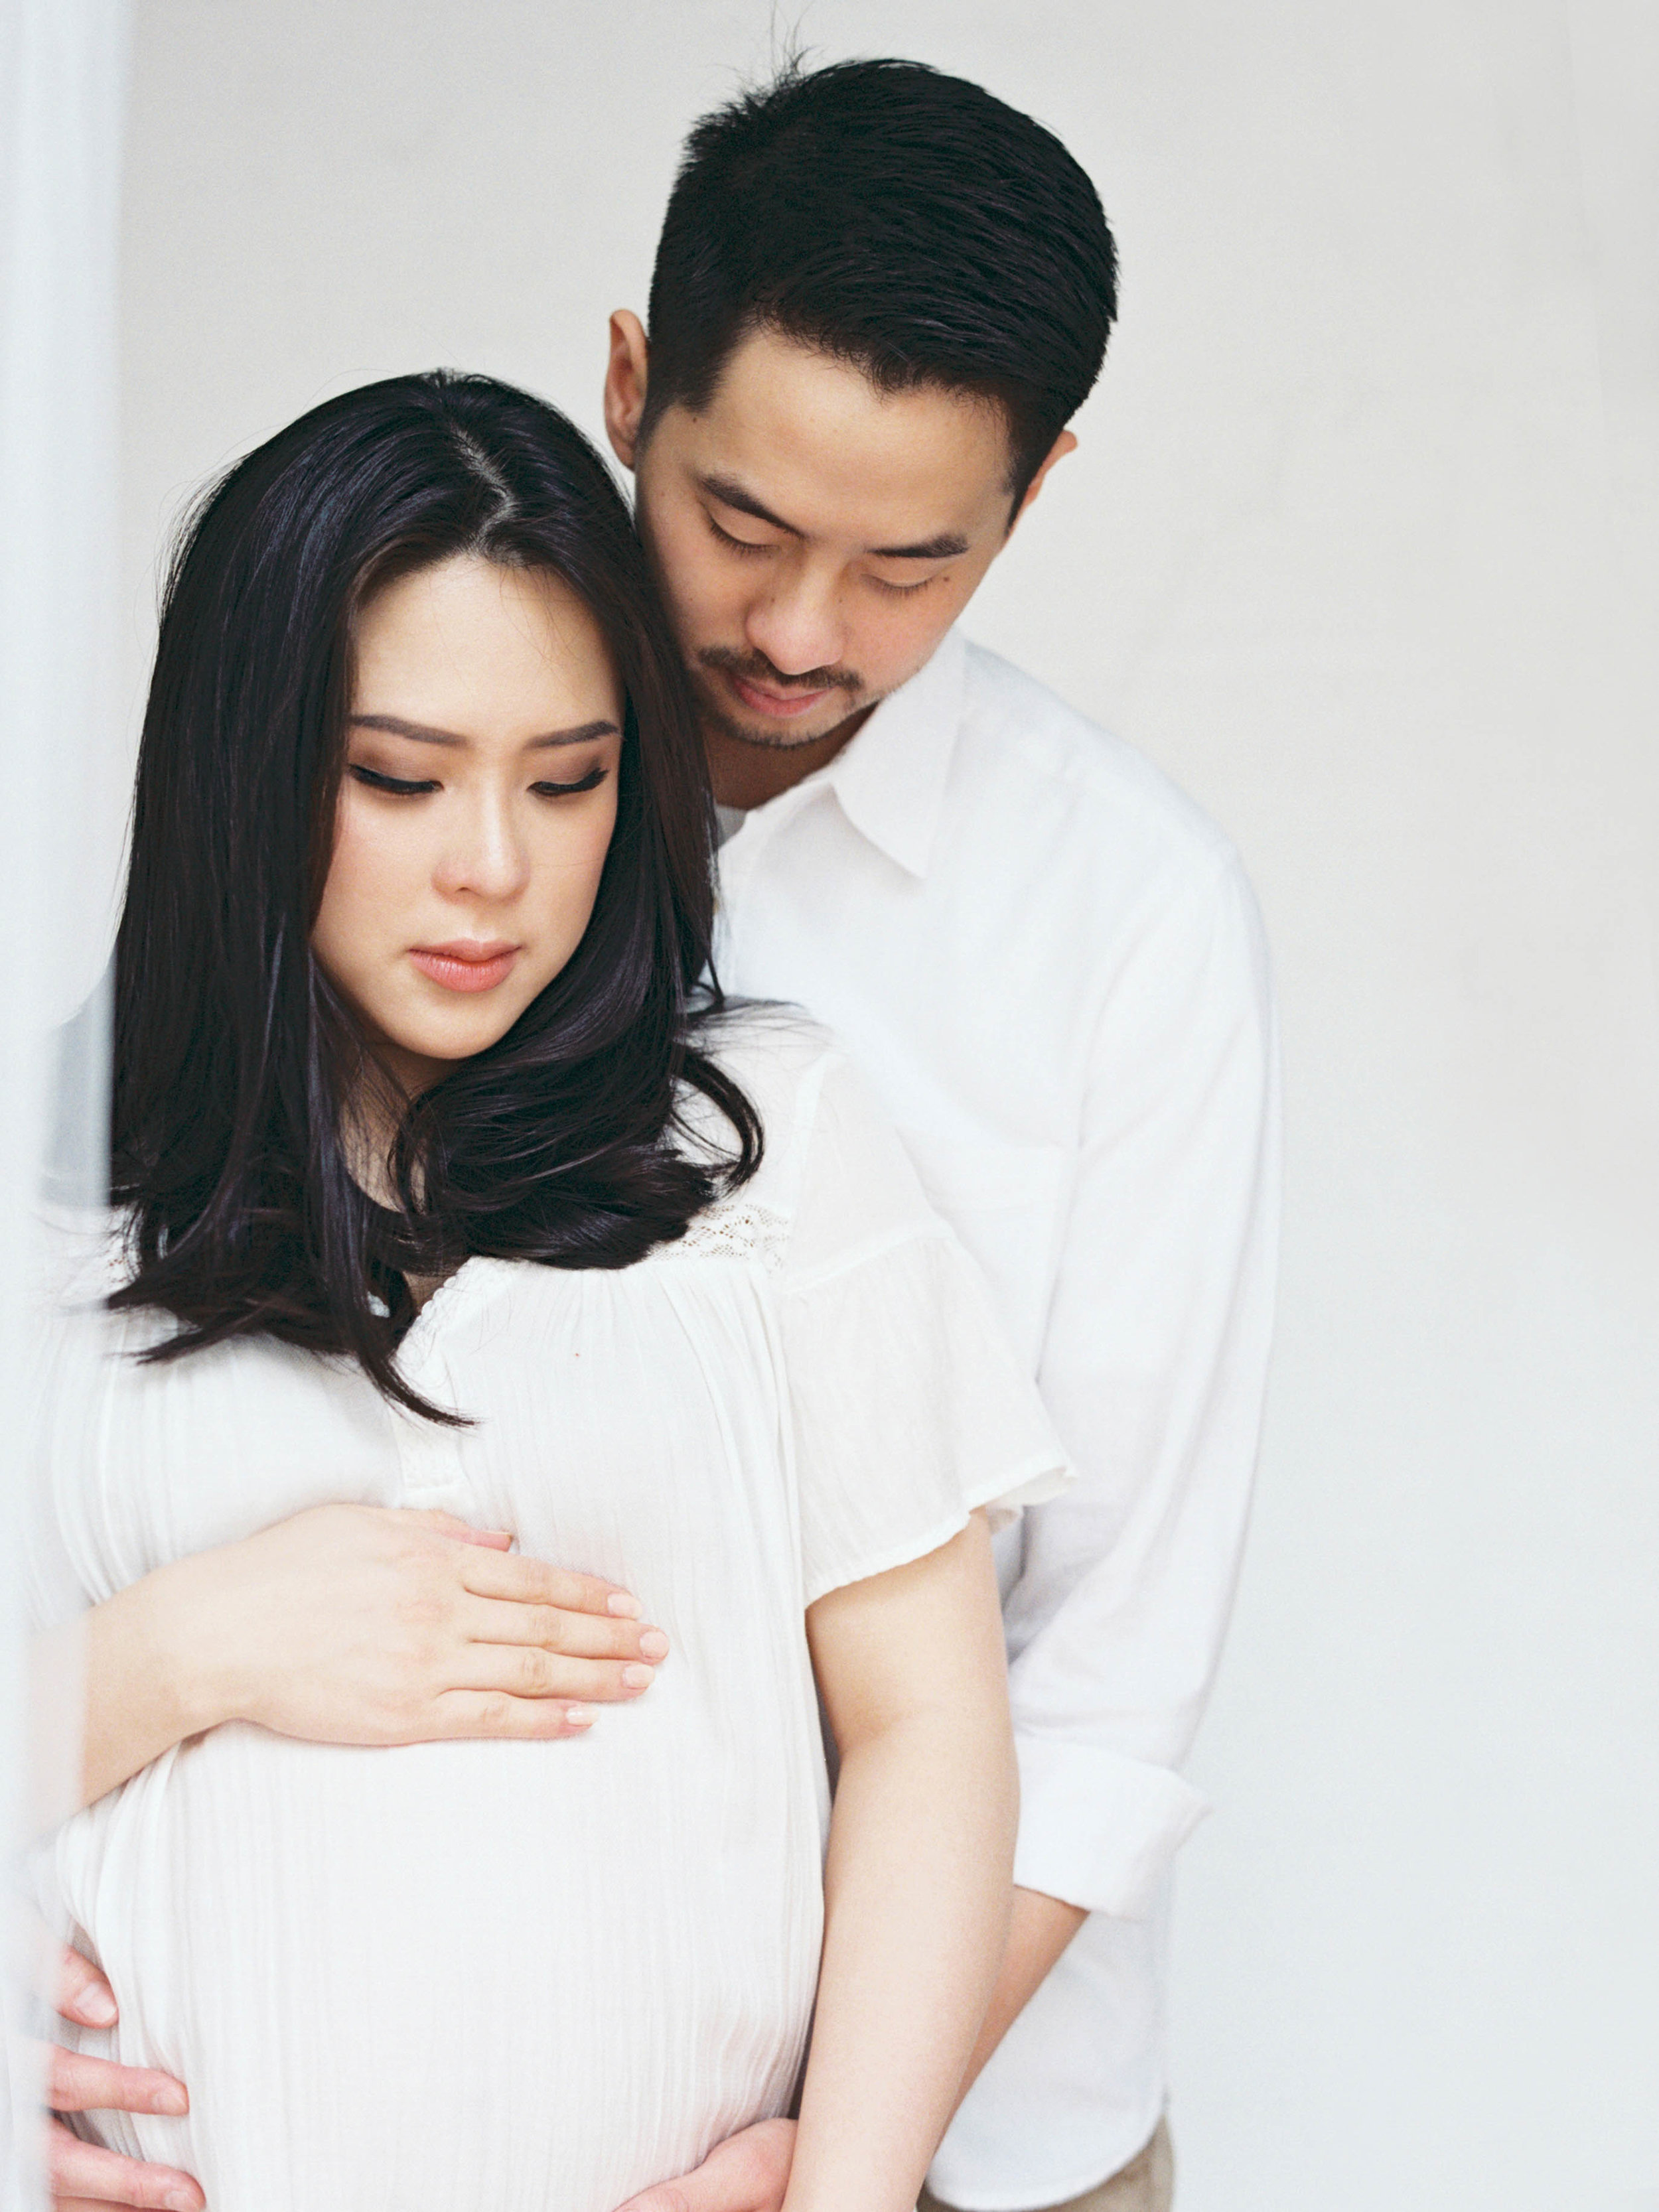 Gaby and Tim-Relaxed-Airy-Simple-Maternity Portrait Photoshoot-At Home-Jakarta-Studio June-Film Photography & Styling-54.jpg